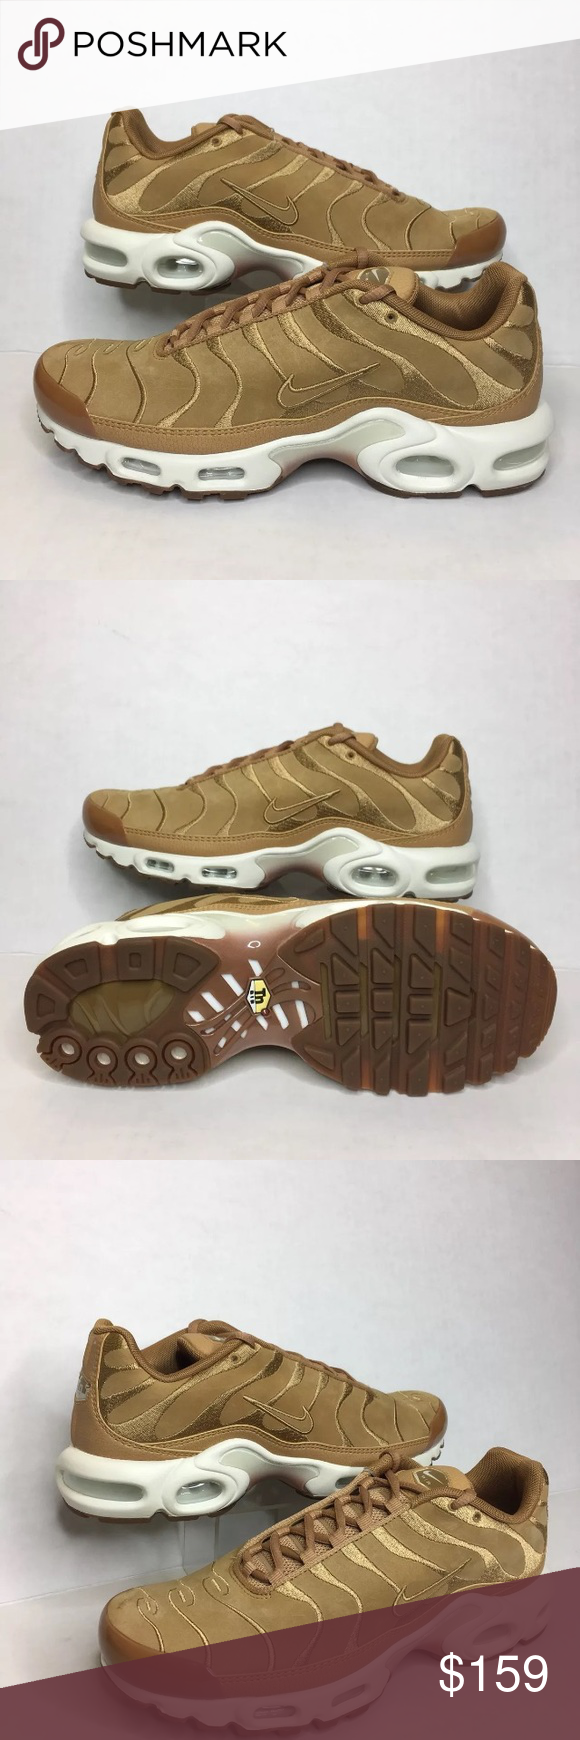 559c6bd1a6 Nike Air Max Plus TN Tuned 1 EF Wheat AH9697 201 Sneakers are New with the